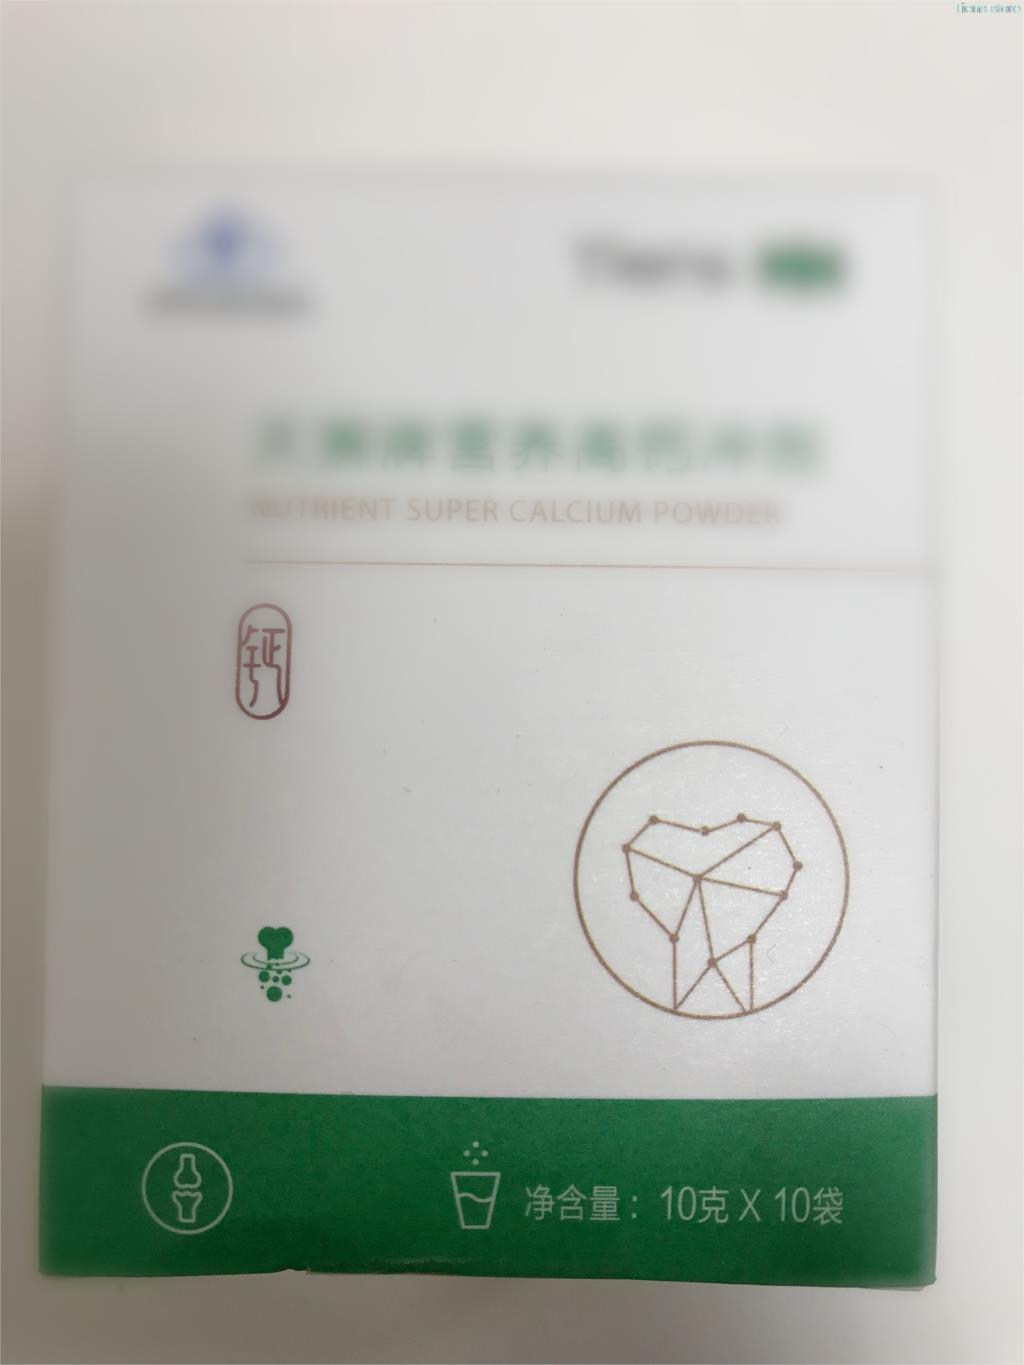 New package 2 Boxes Tien Nutrient Super Calcium Tien.s production in 2019-in Massage & Relaxation from Beauty & Health    1